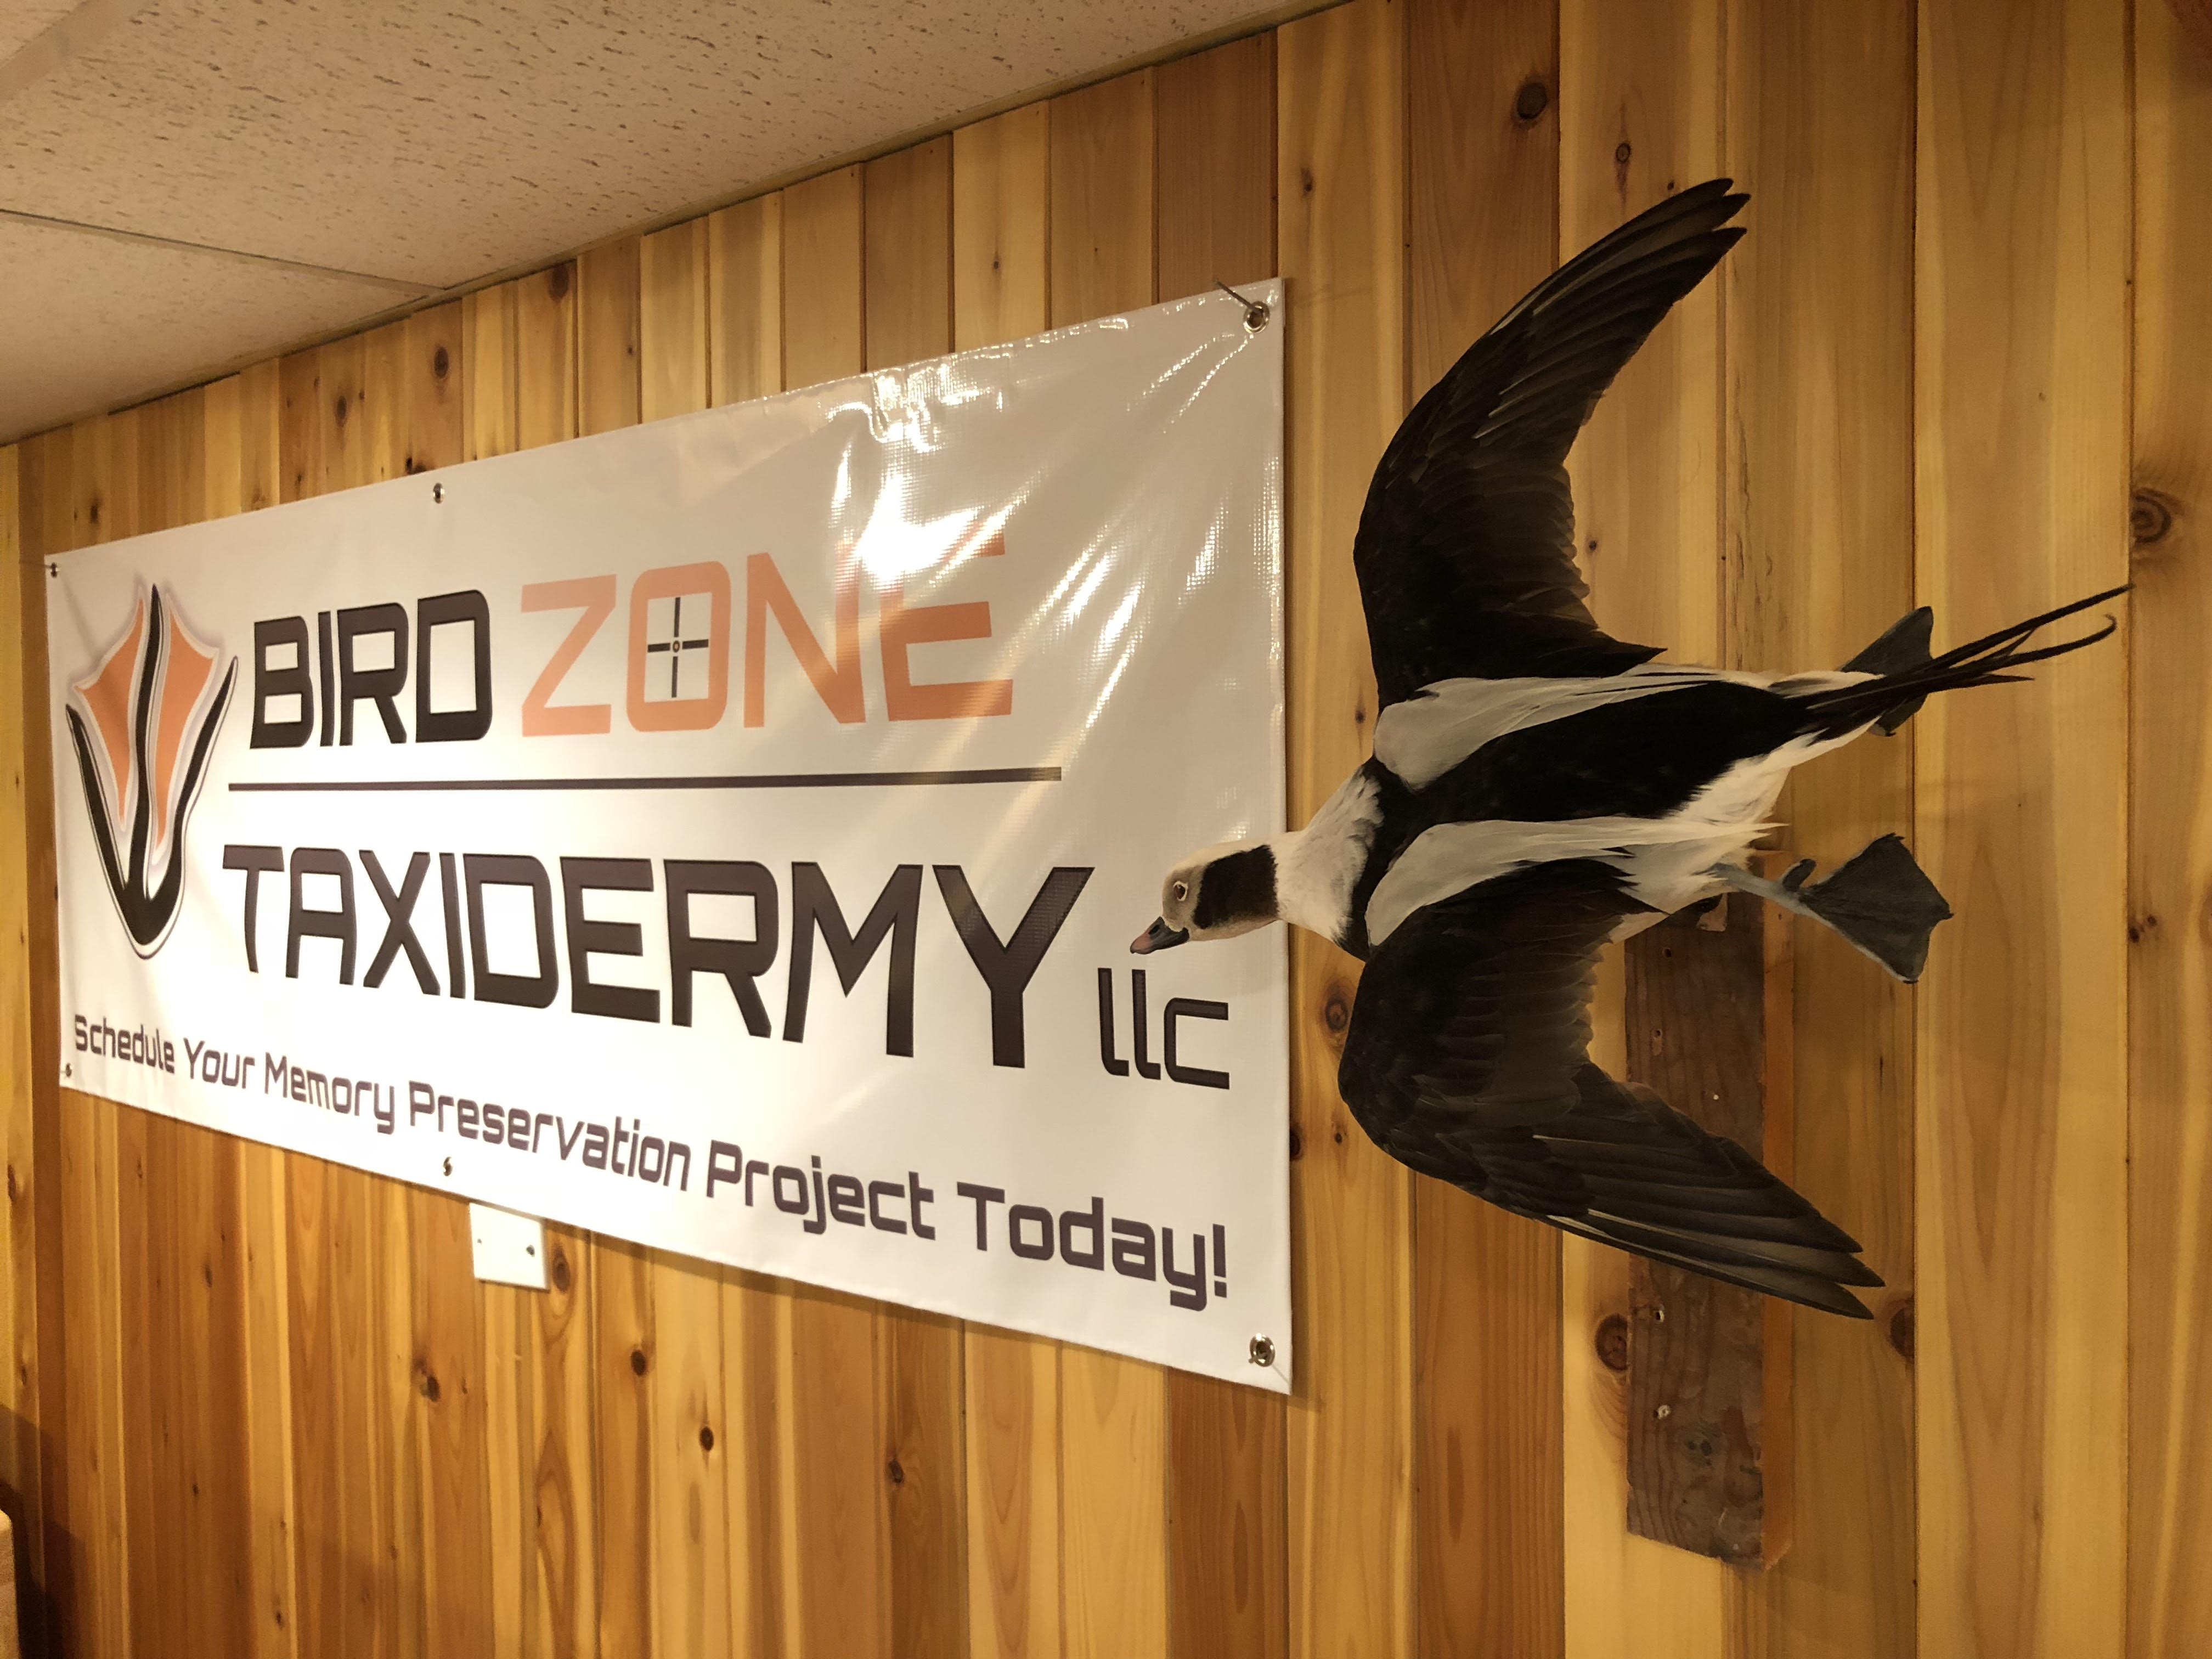 Old Squaw Taxidermy Flying Fast